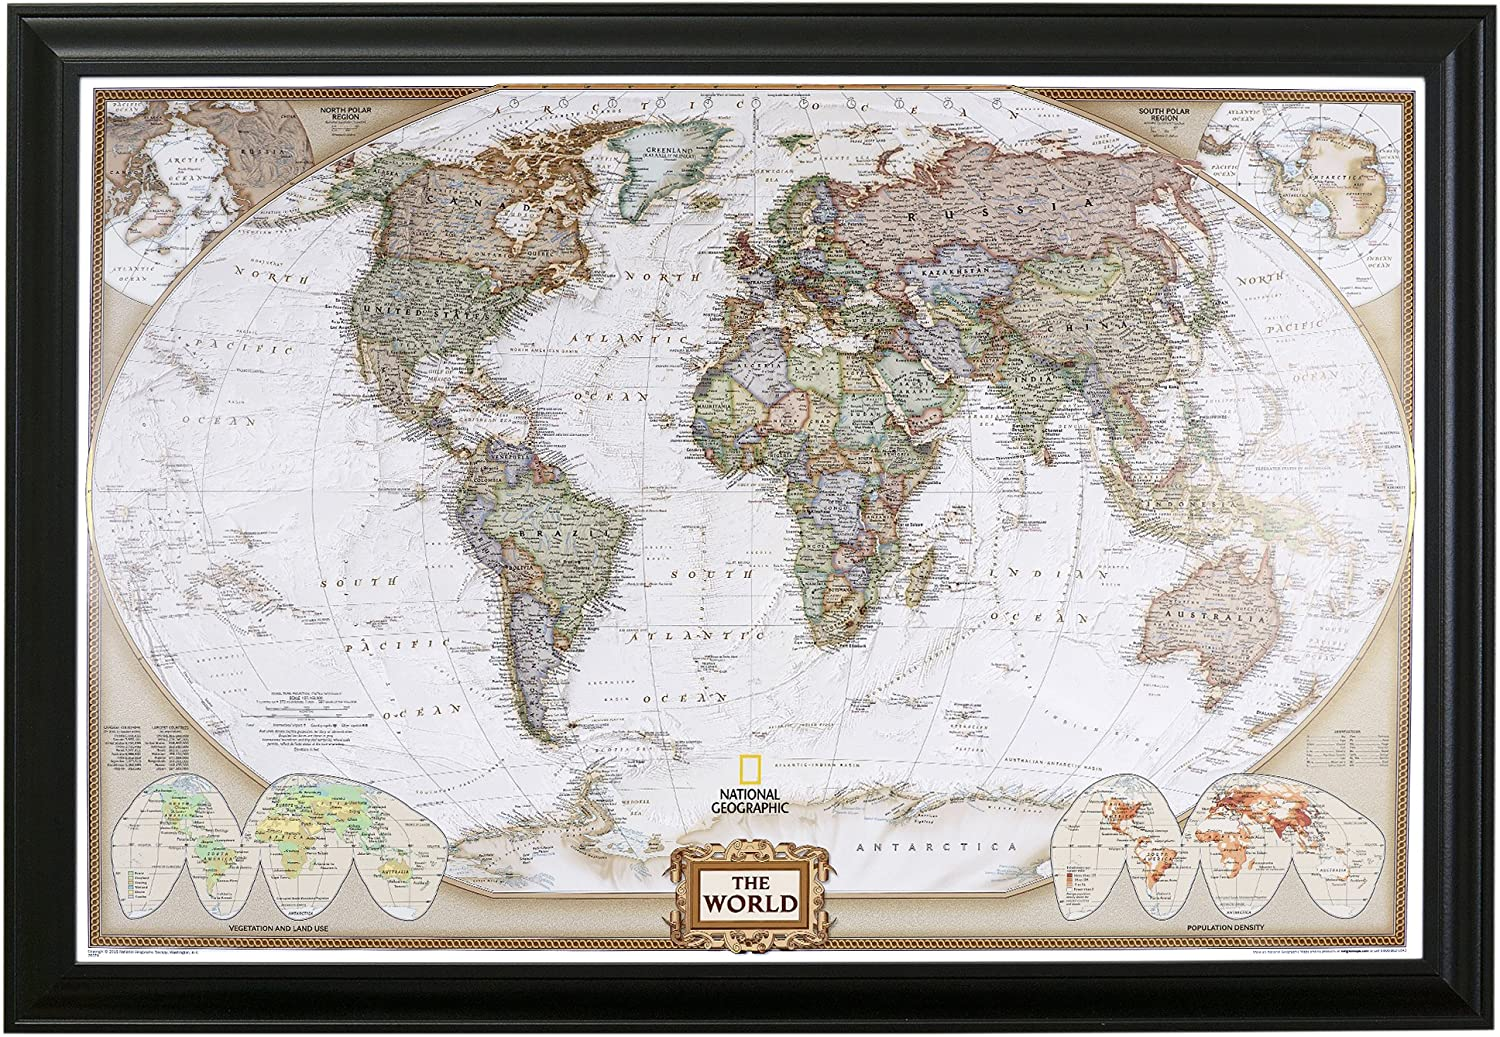 Framed World Map With Push Pins Amazon.com: Push Pin Travel Maps Executive World with Black Frame